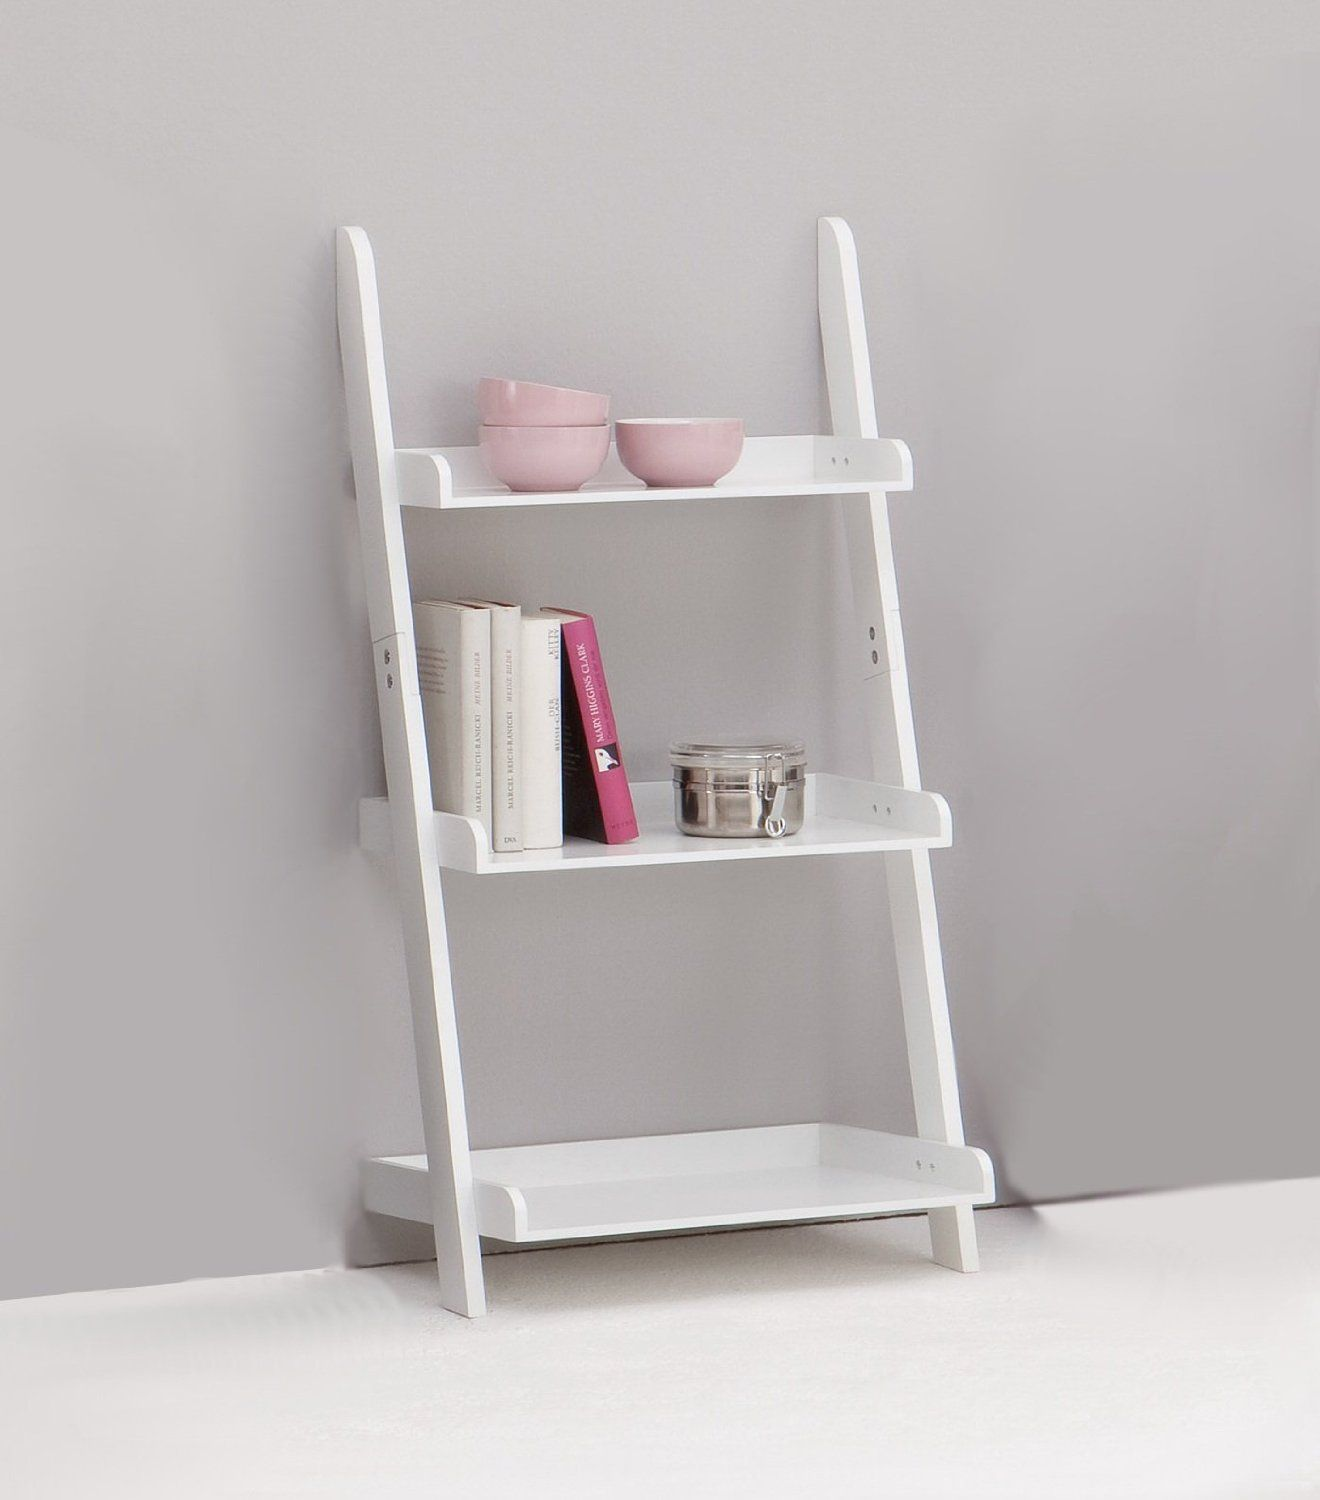 Statuette Of White Leaning Desk Remodel Inspiration White Ladder Bookshelf White Ladder Shelf